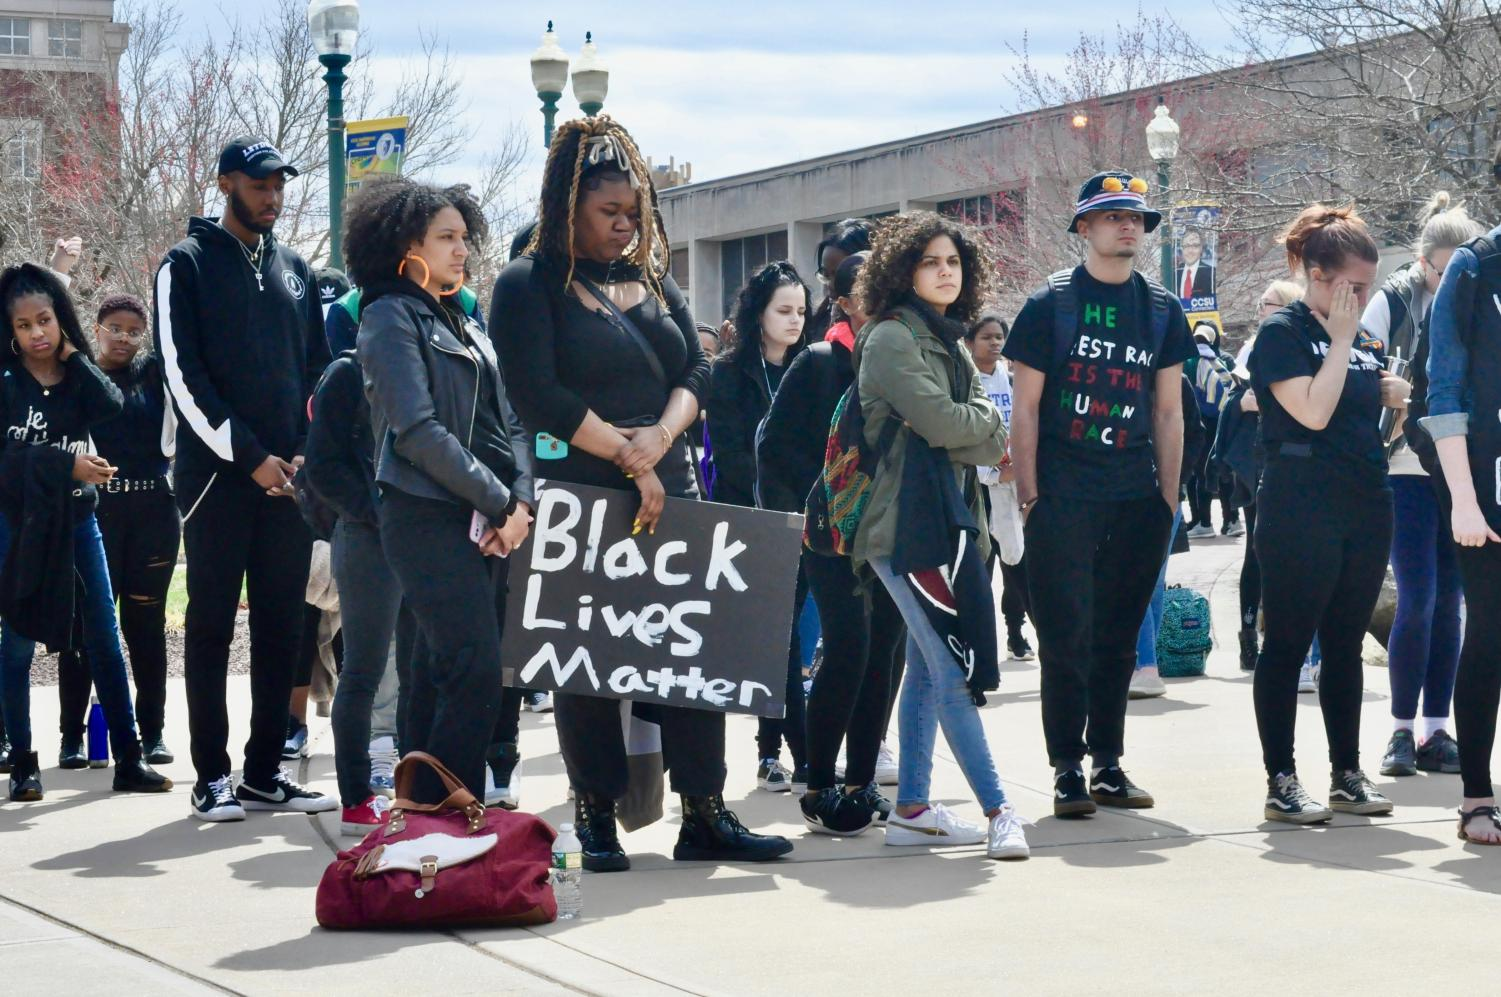 The+rally+was+in+response+to+anti-gay+pamphlets+and+racist+graffiti+that+appeared+on+campus.+The+Recorder+gave+room+for+all+the+voices+but+made+some+wording+less+discernible.+